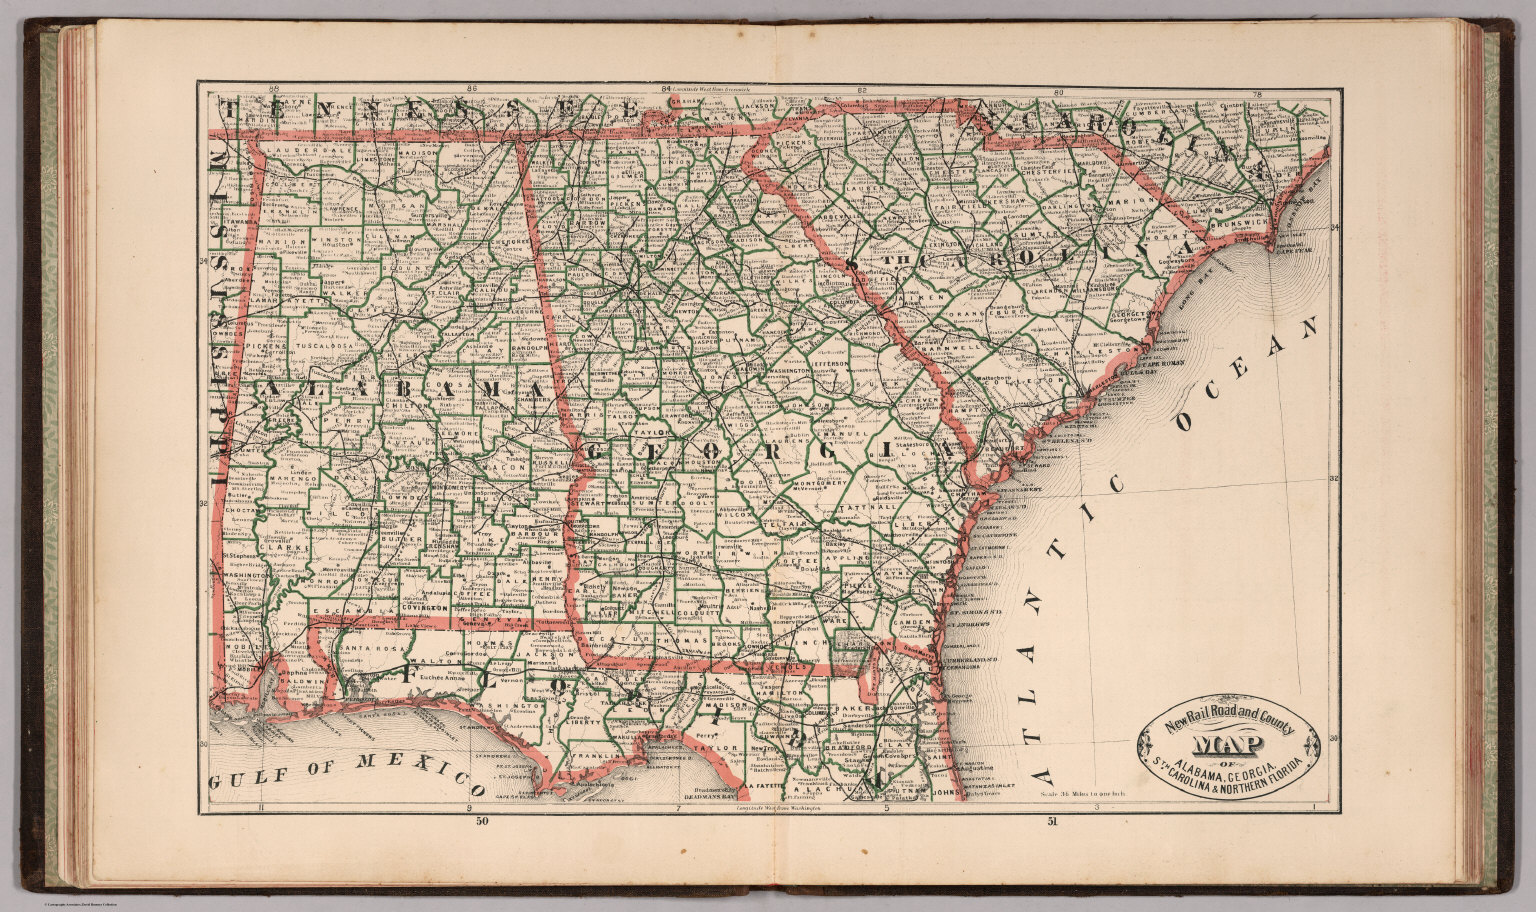 County Map Of Georgia With Roads.New Rail Road And County Map Of Alabama Georgia South Carolina And